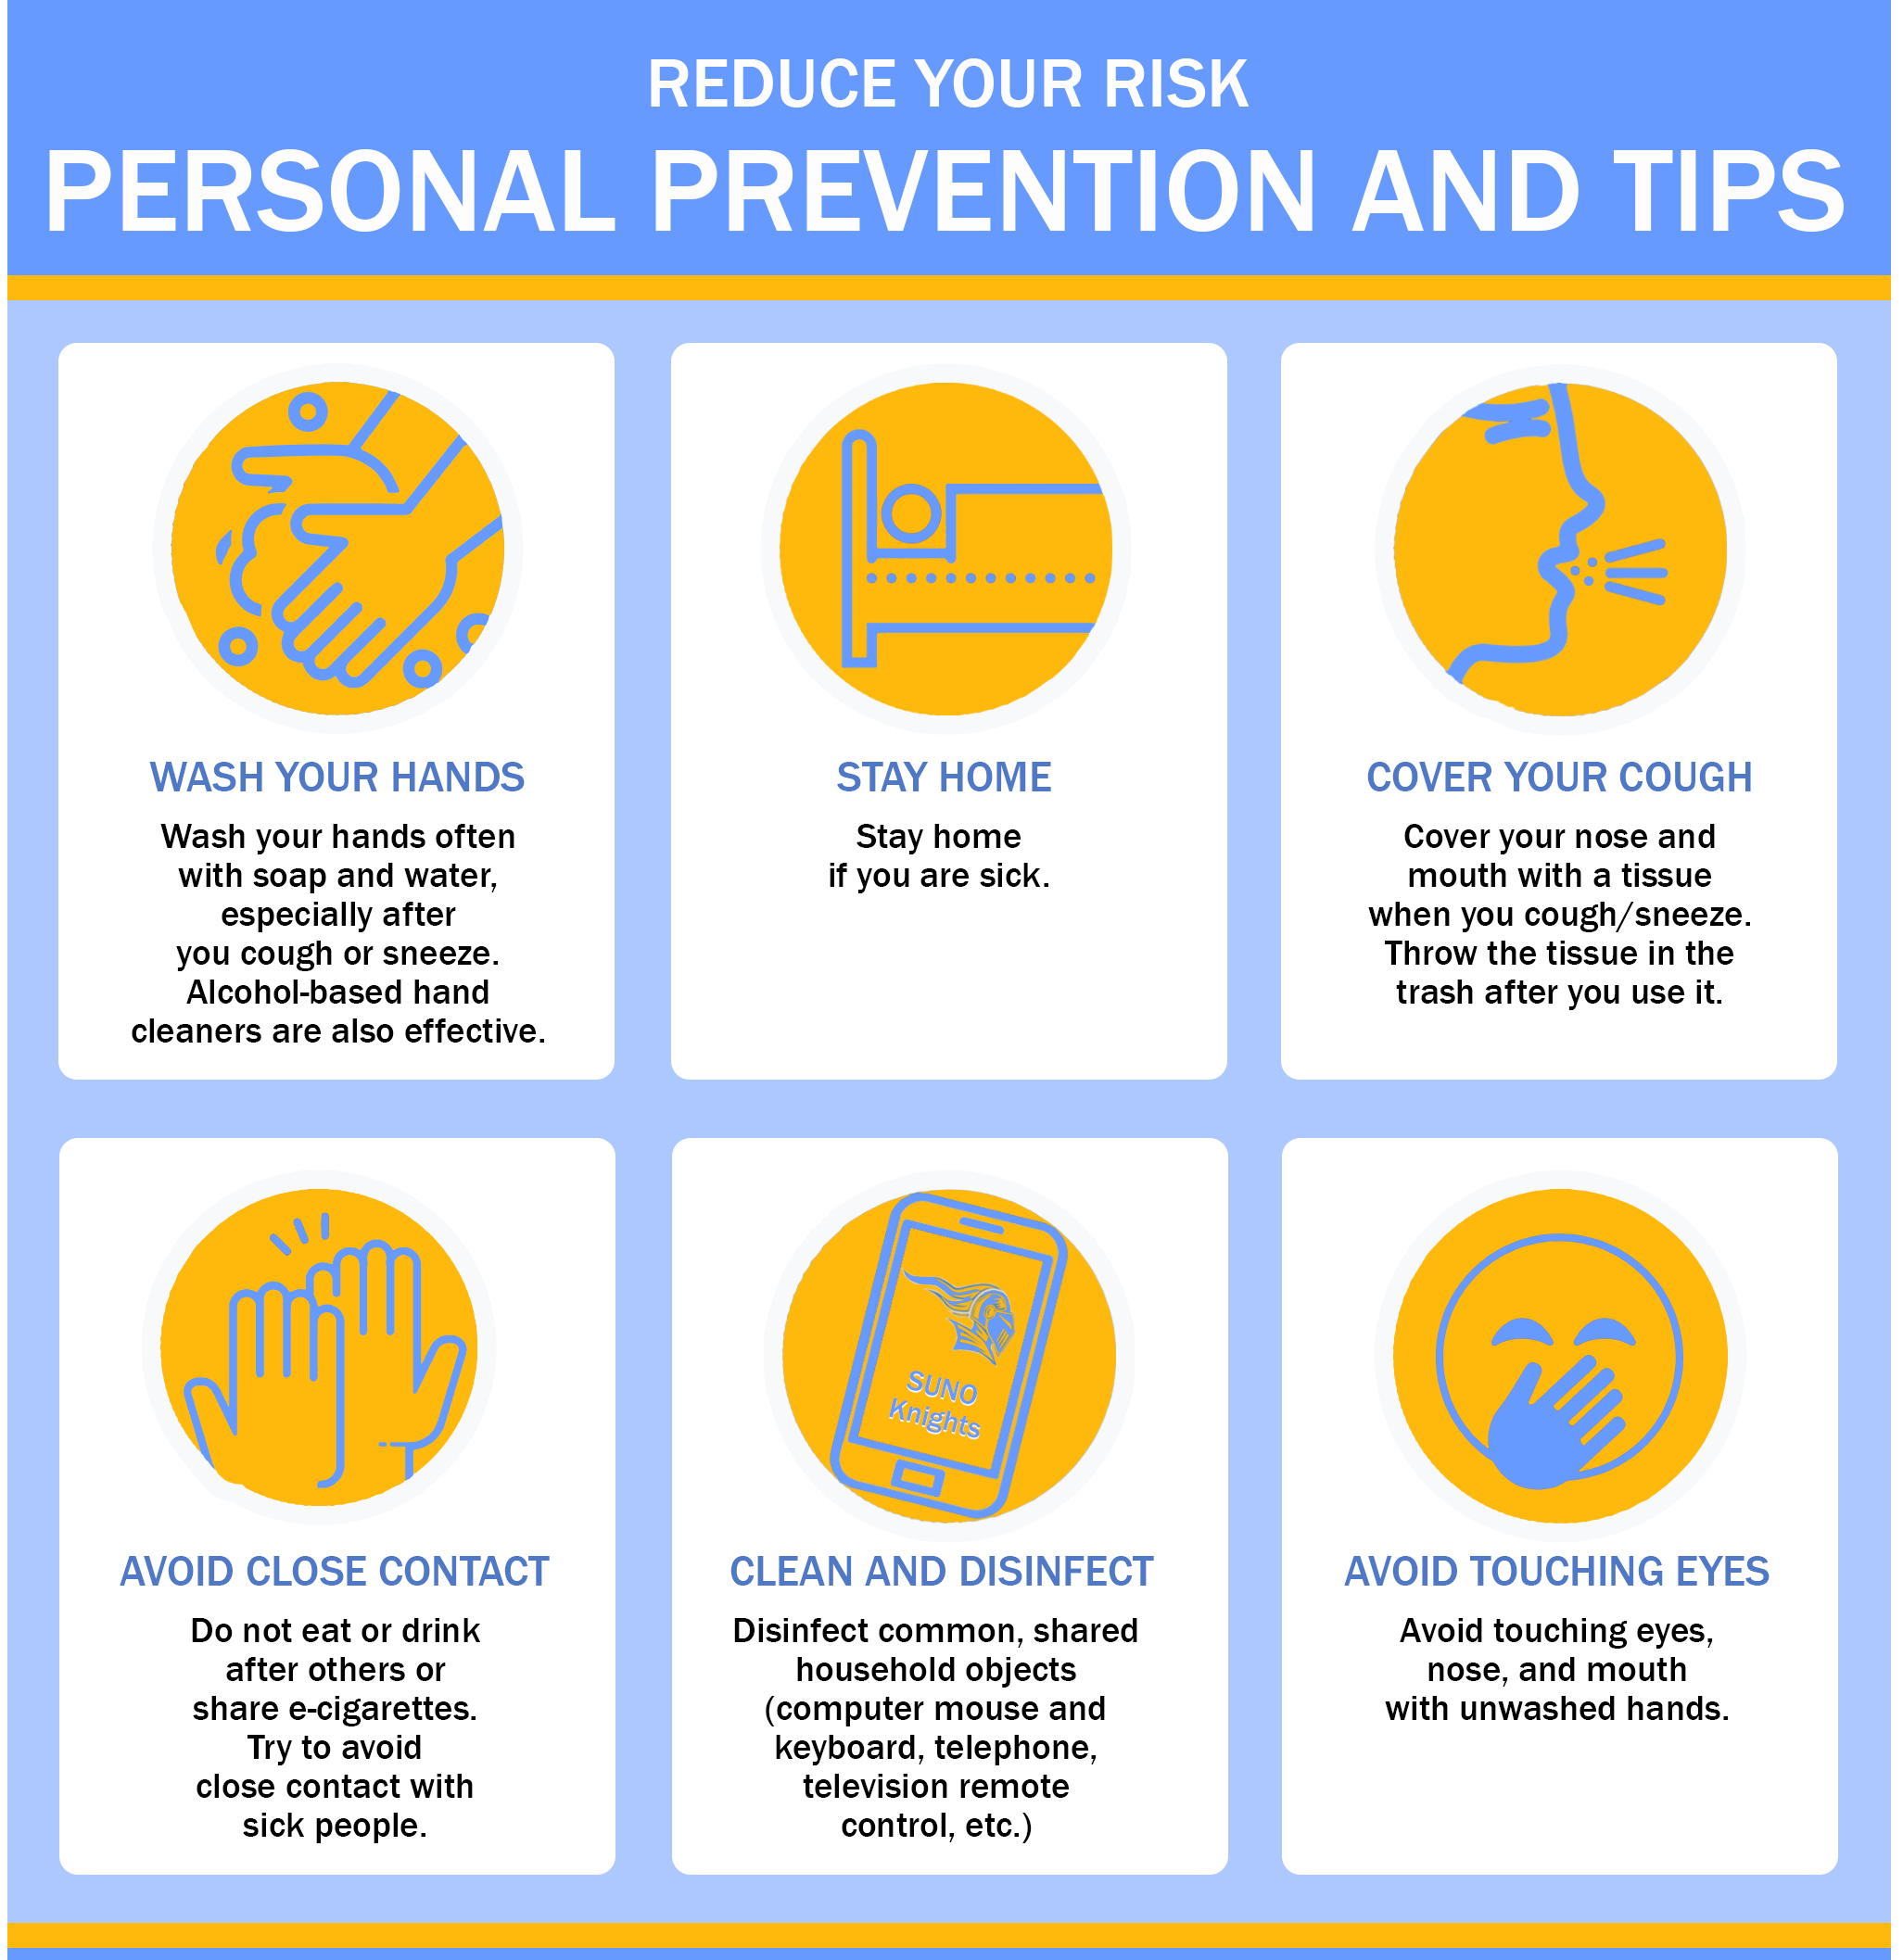 PERSONAL PREVENTION & TIPS